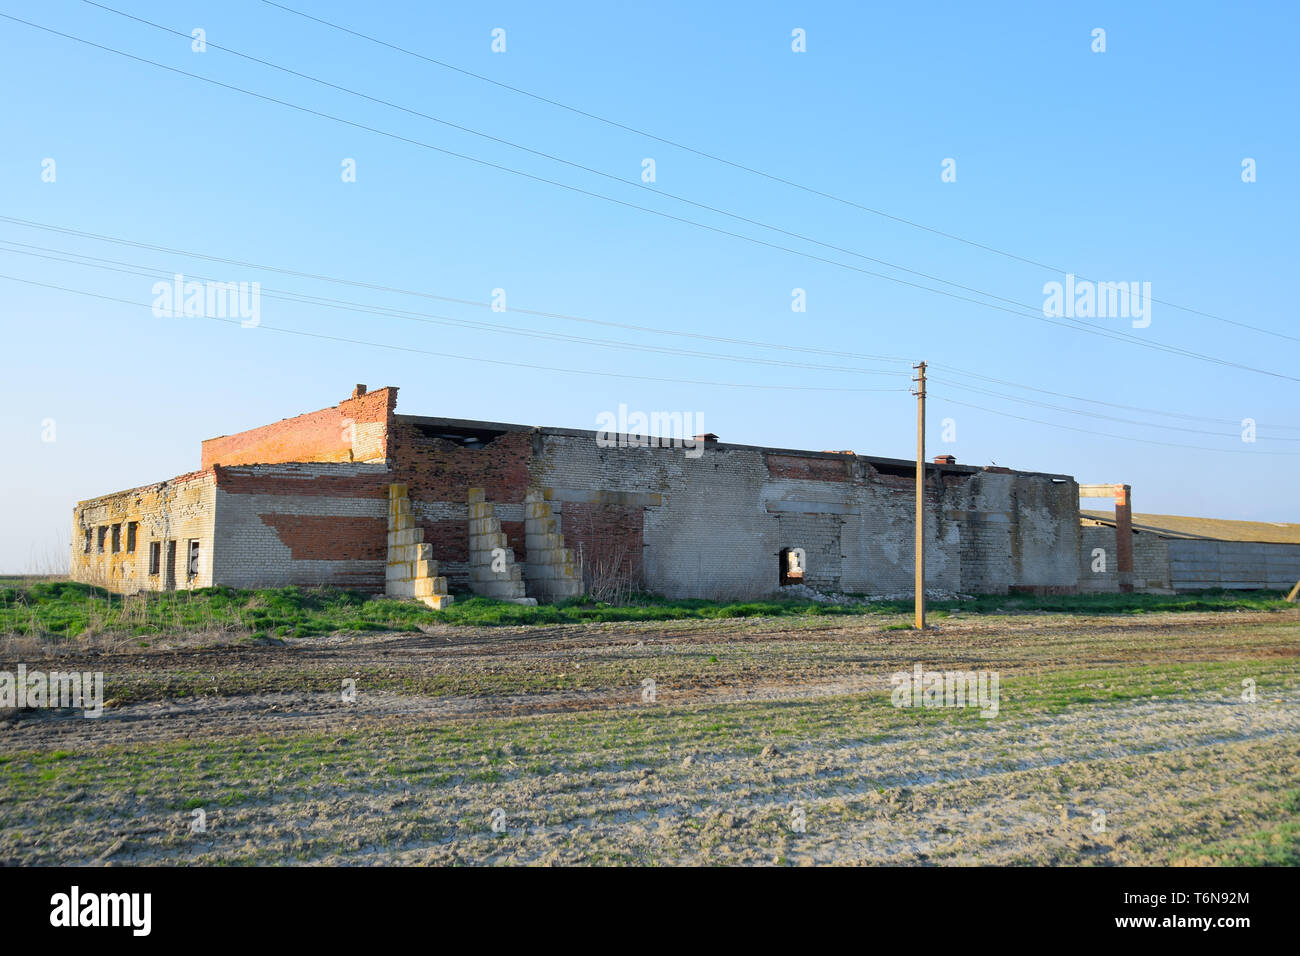 Old soviet brick abandoned building. Collapsing brick construction. white and red brick - Stock Image